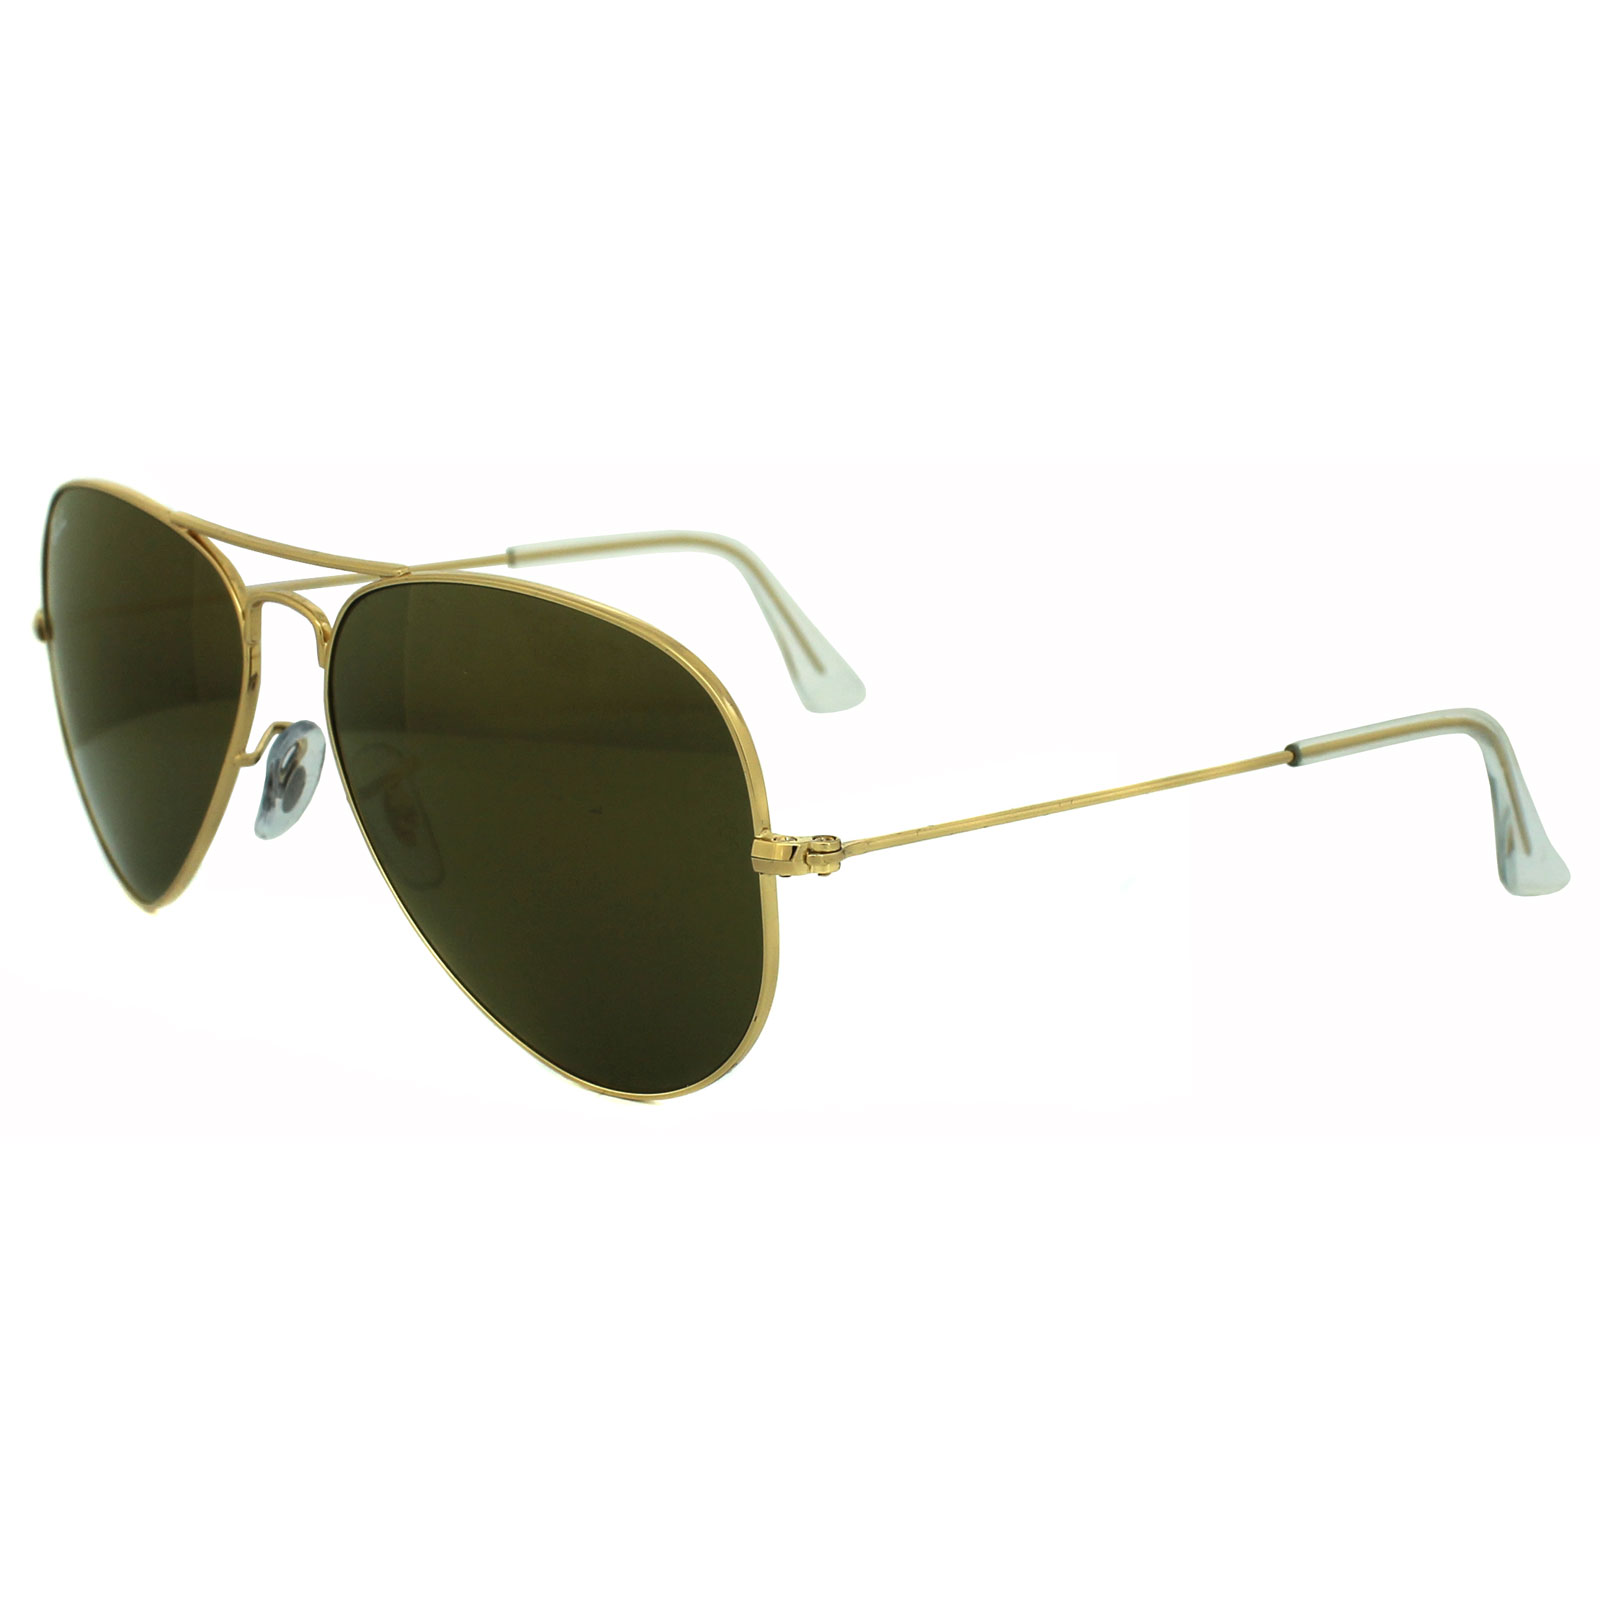 ray-ban 3025 w3276 aviator sunglasses